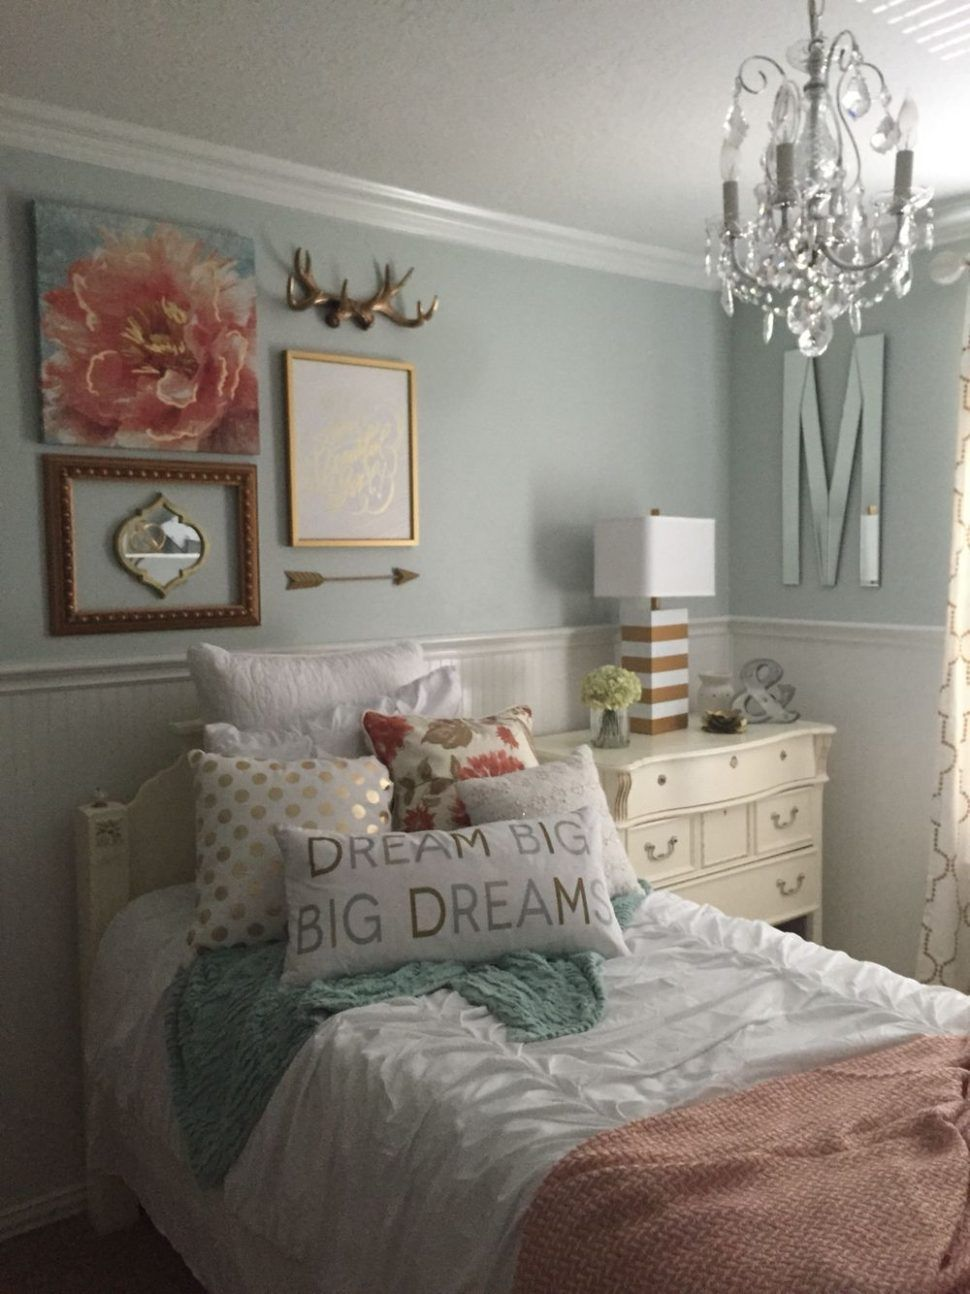 Bedroom Ideas Girls Mint Coral Blush White Metallic Gold Room Decor And Grey Teal Gray Navy Turq In 2020 Girl Bedroom Decor Classy Bedroom Teenage Girl Bedroom Decor